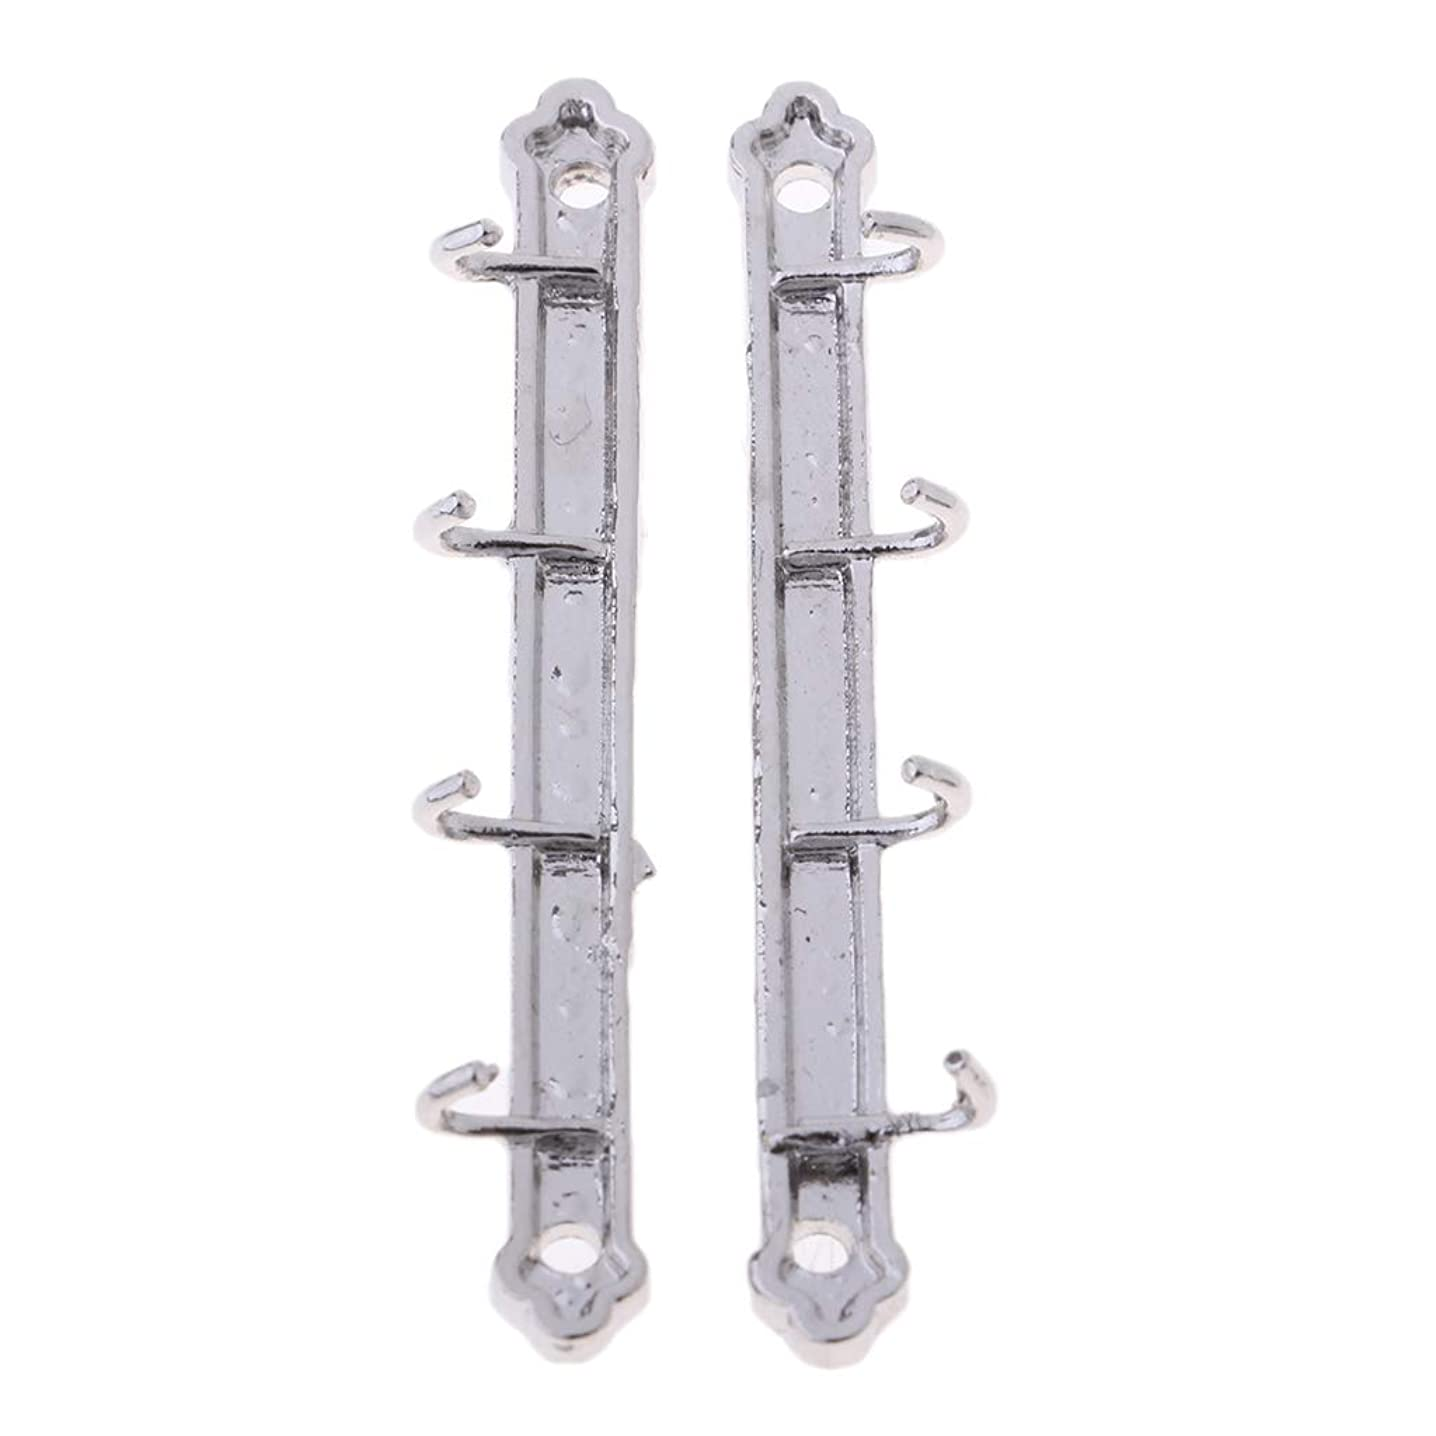 Fenteer 1/12 Dollhouse Furniture Bathroom Mini Clothes Hook Rack Alloy Wall Hanger for Dolls House Micro Landscape 4pcs Silver